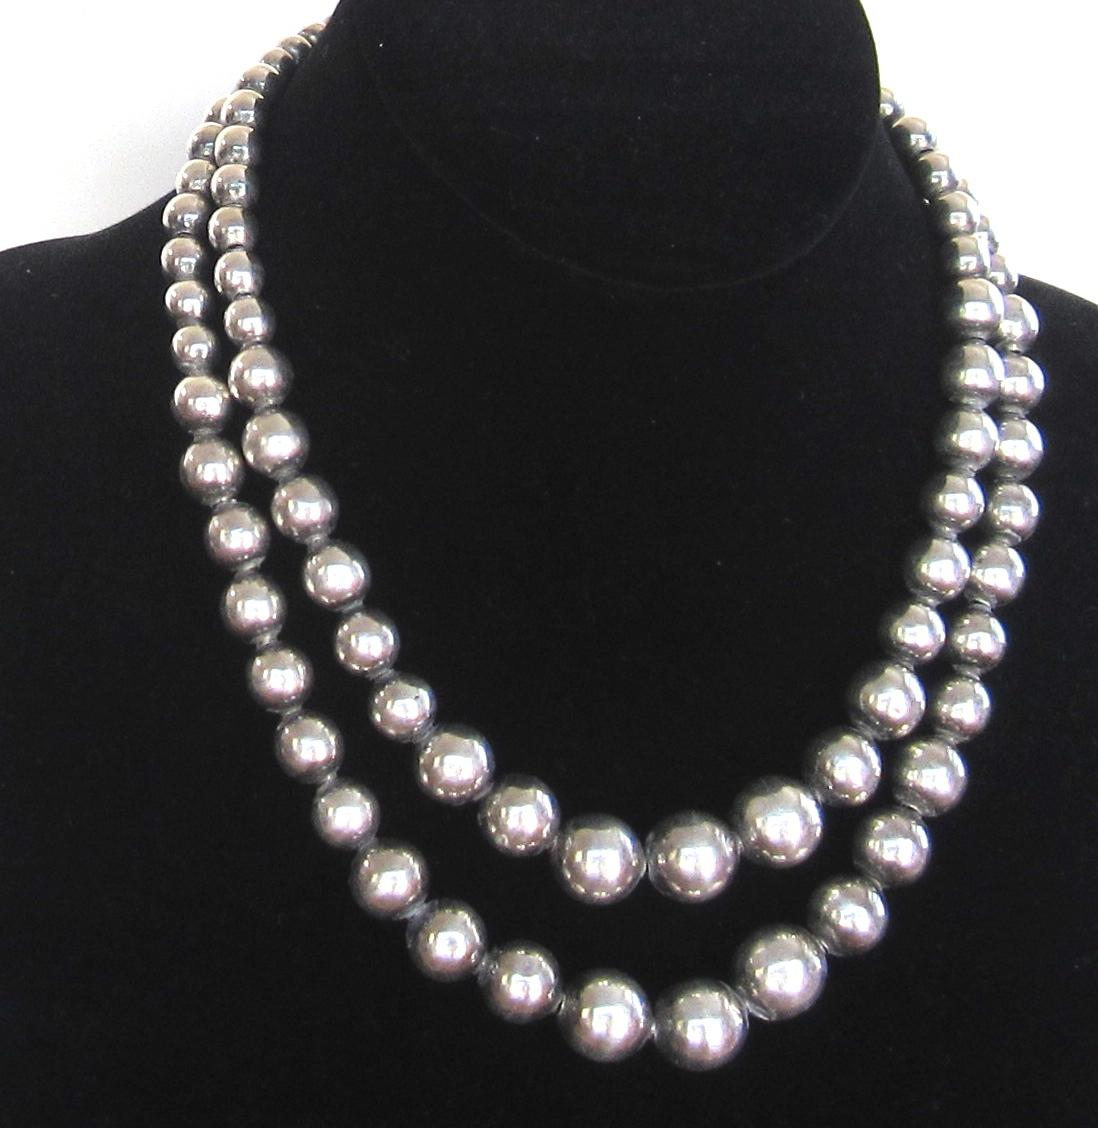 silver bead necklace roll over large image to magnify, click large image to zoom dxpmbiz